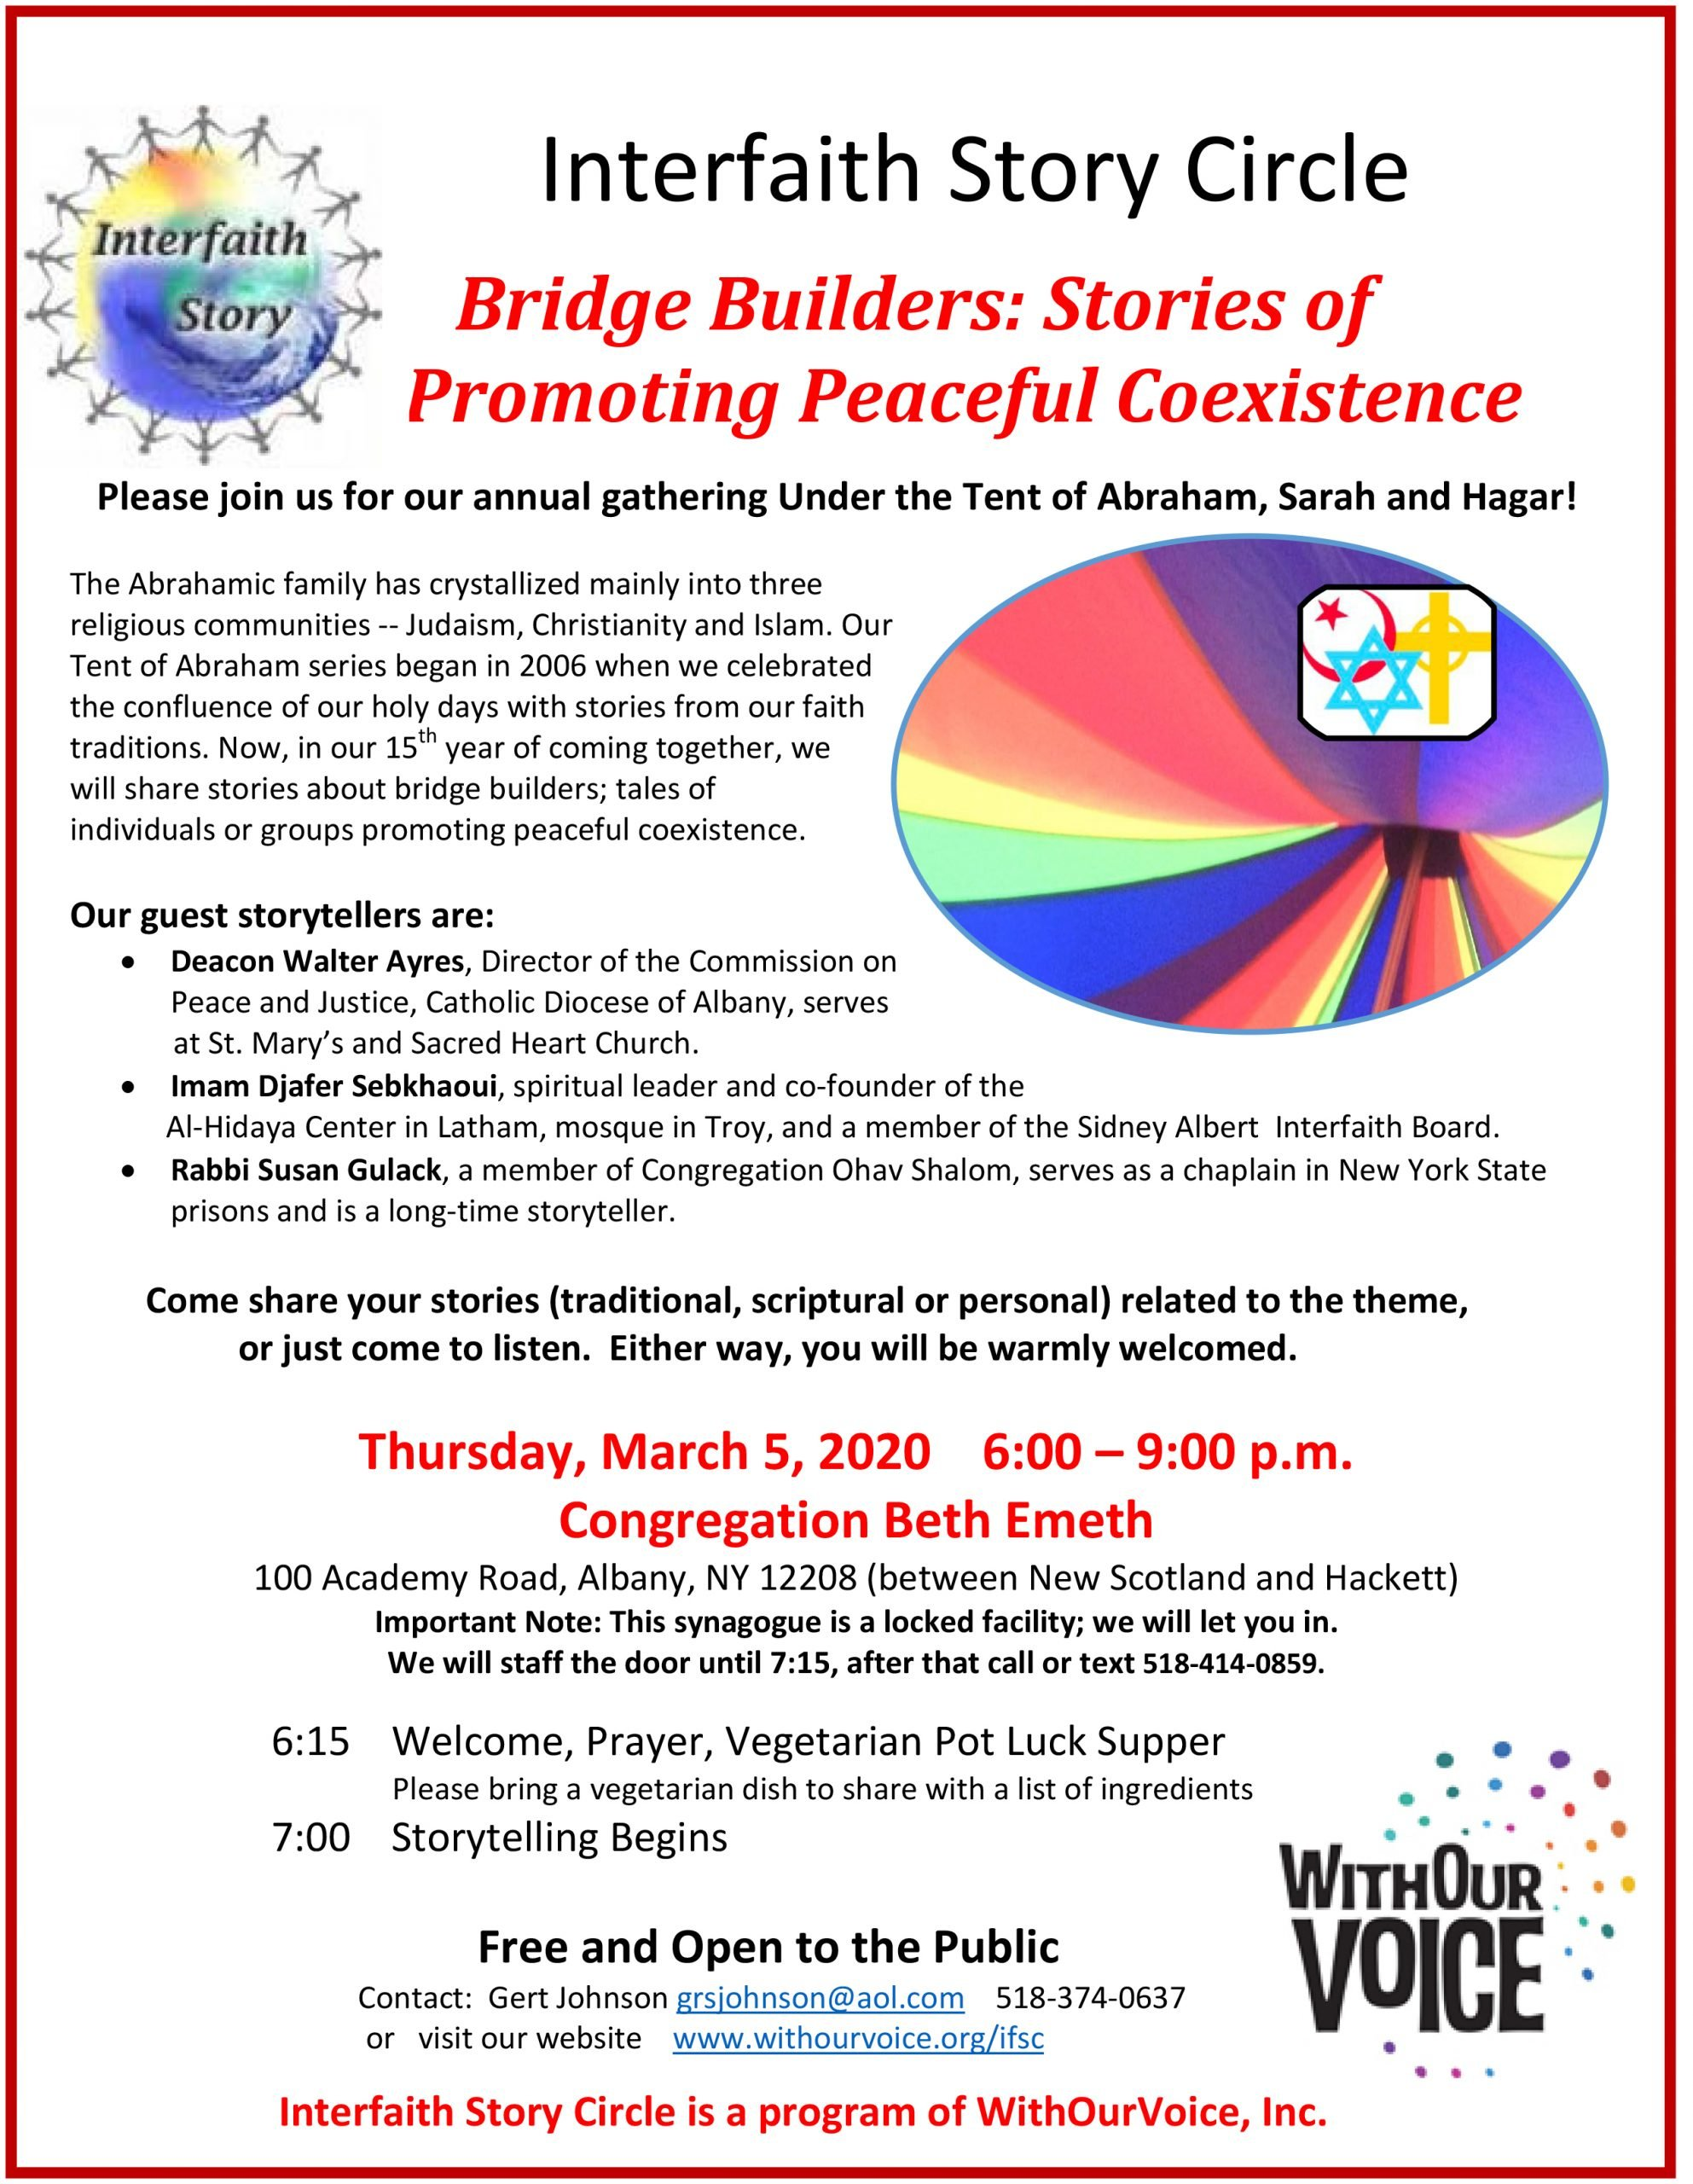 Bridge Builders: Stories of Promoting Peaceful Coexistence — Thursday, Mar. 5, 6:00 – 9:00 p.m.